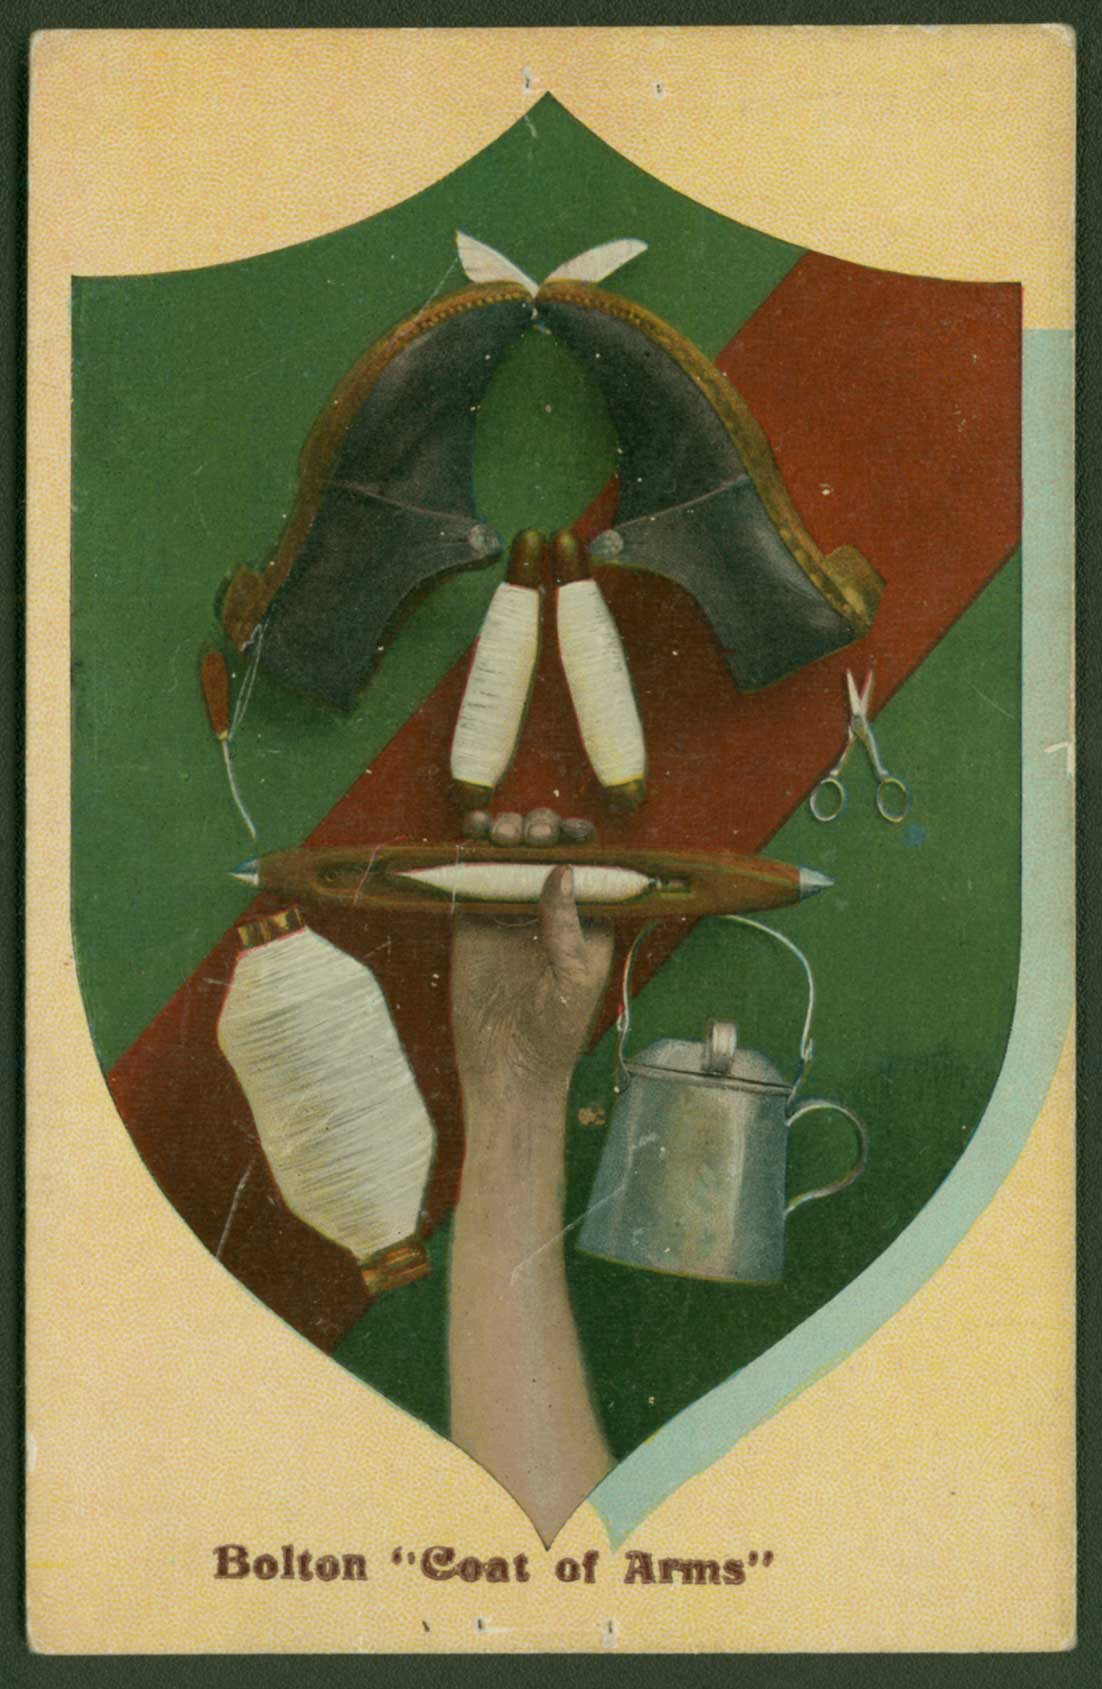 Bolton Coat of Arms postcard